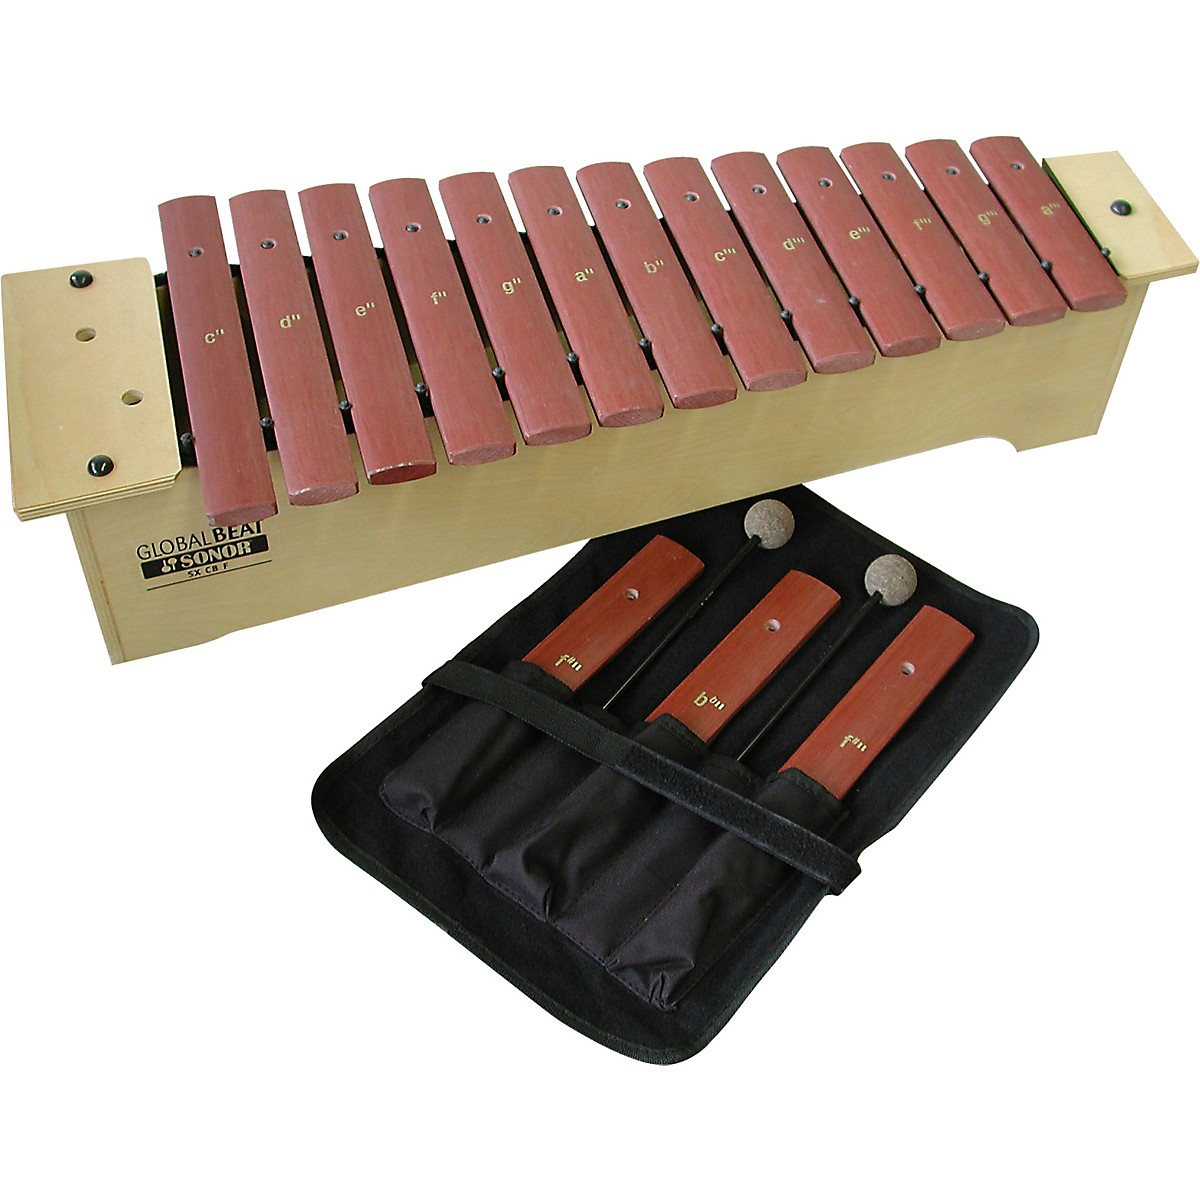 Sonor Orff Global Beat Soprano Xylophone with Fiberglass Bars